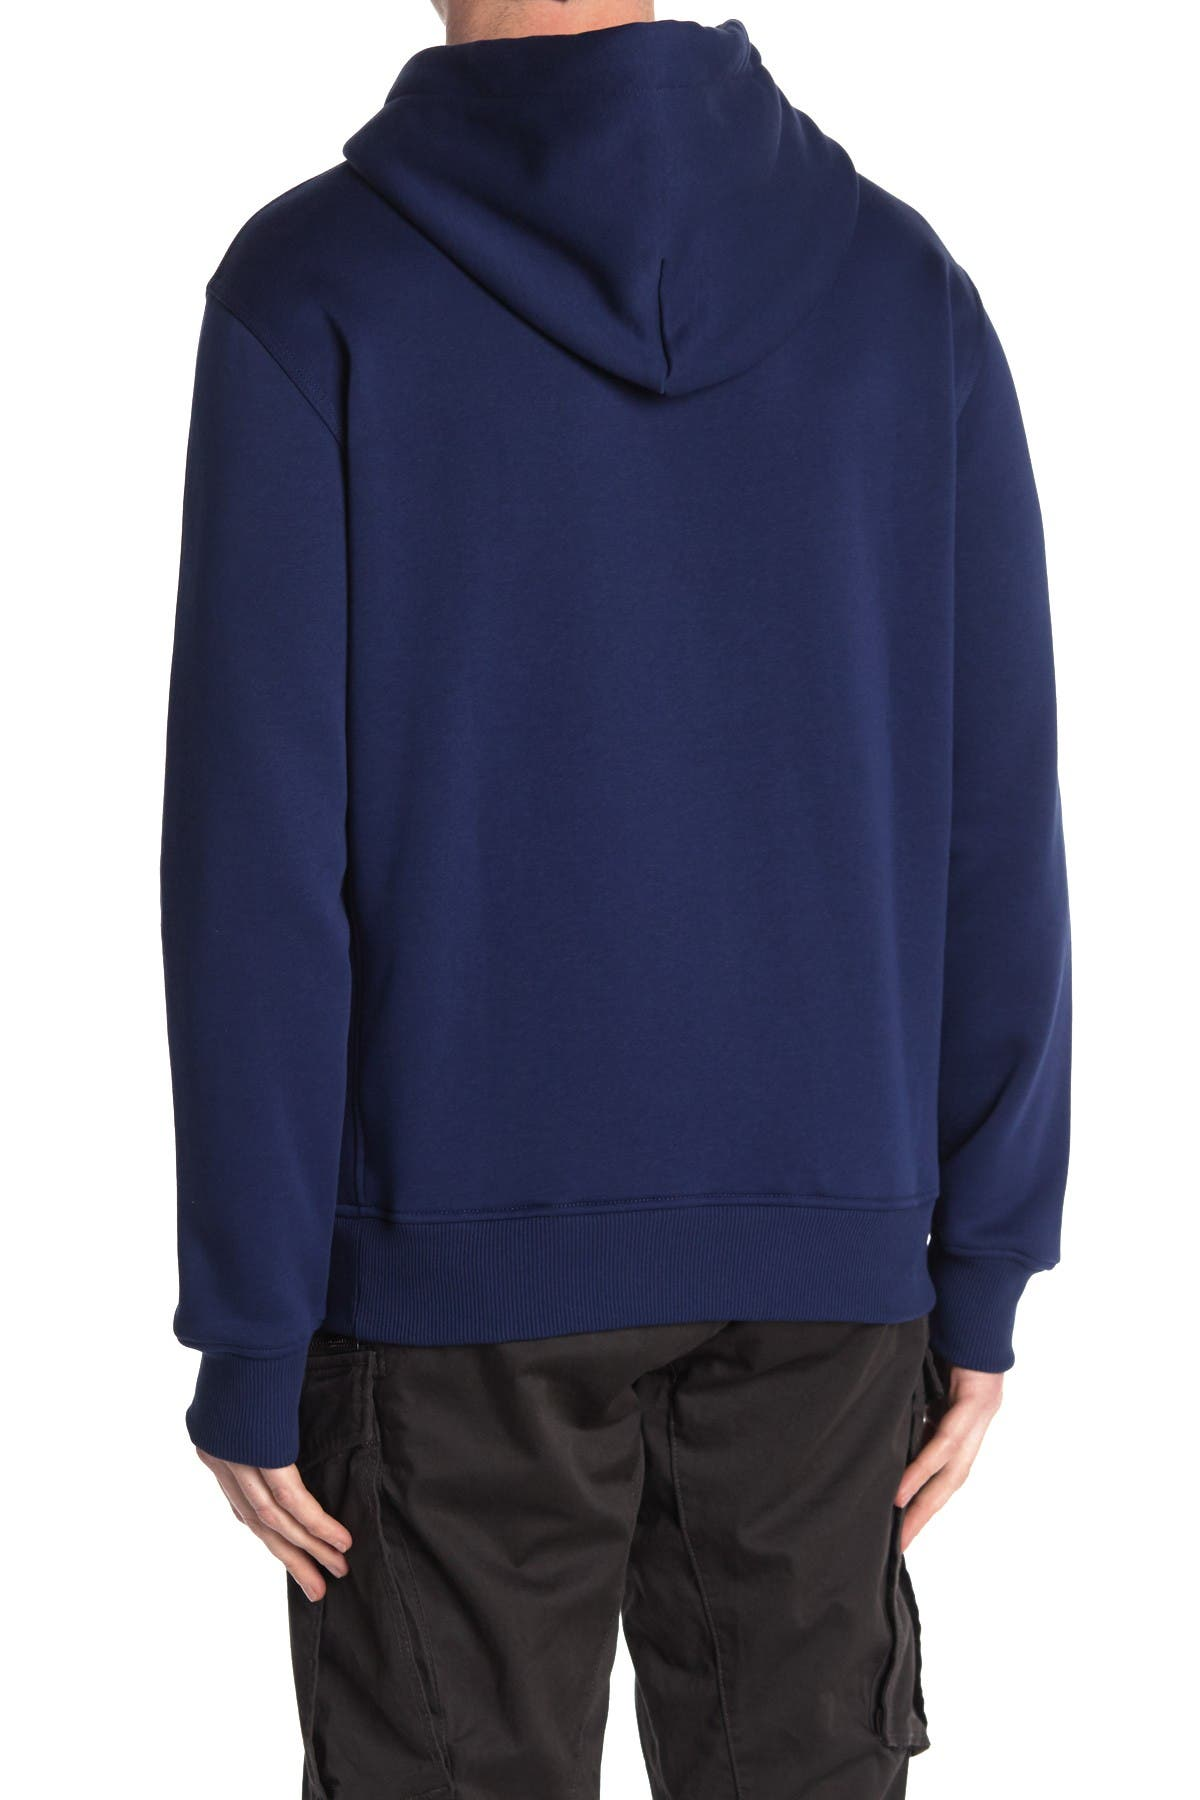 Image of G-STAR RAW Varsity Felt Drawstring Hoodie